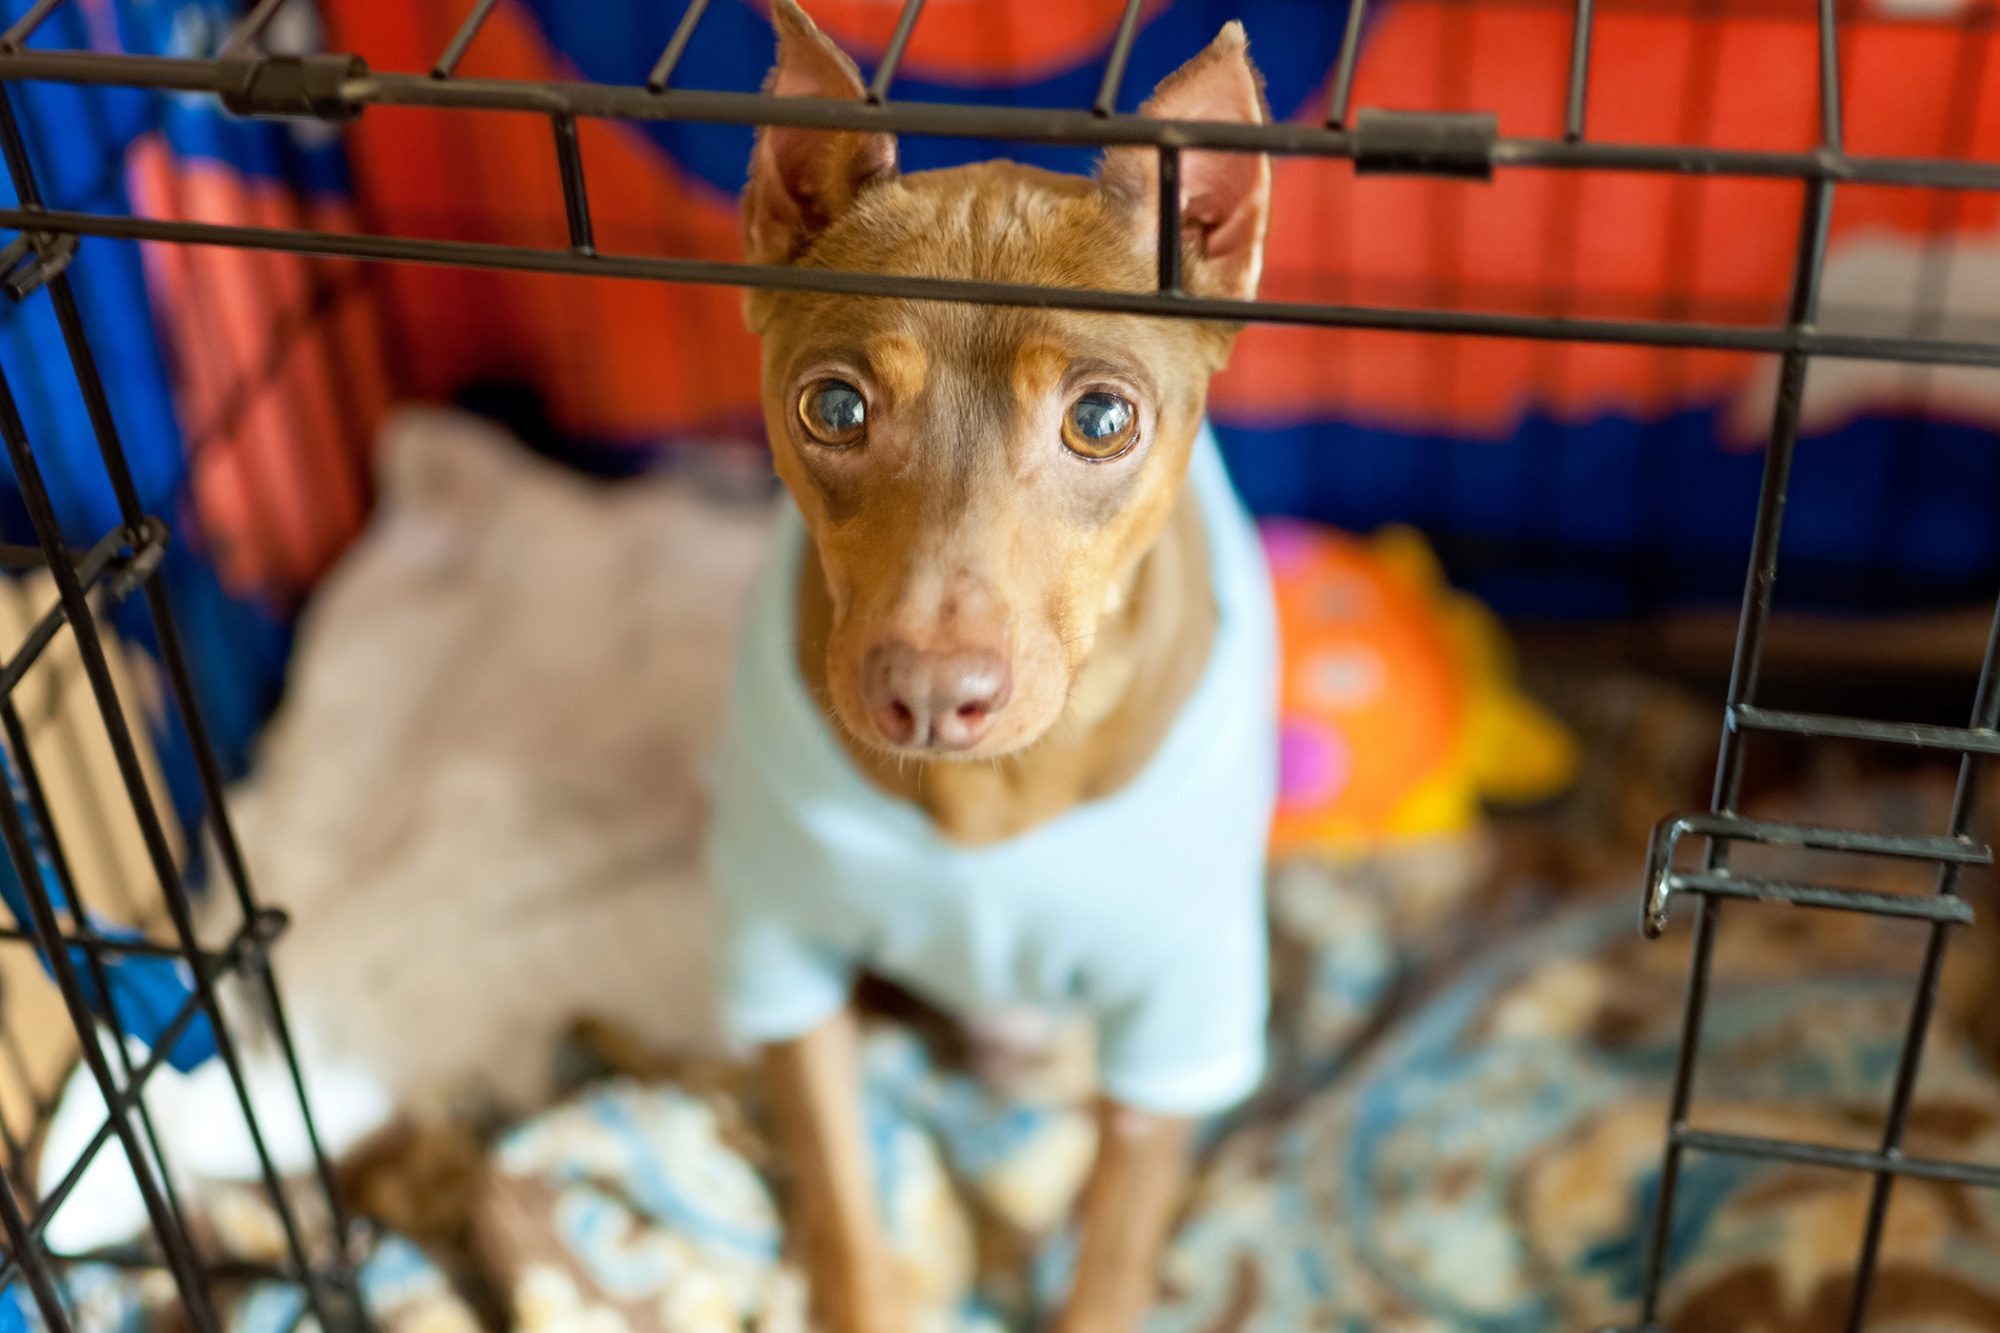 Chihuahua mix in blue sweater sits in crate